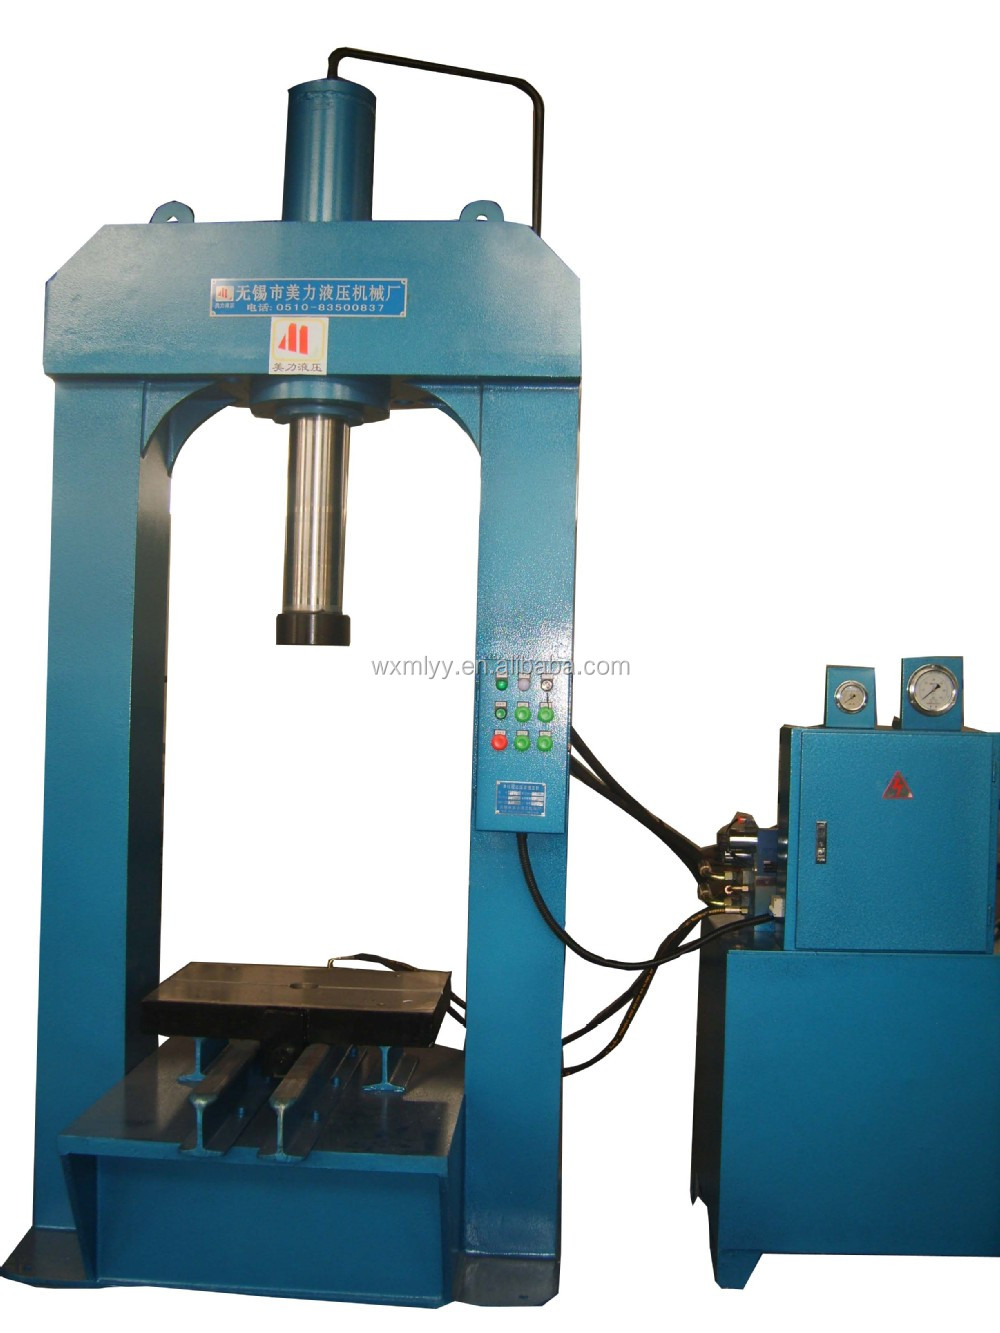 Gantry Frame Hydraulic Stretching Press hydraulic punching machine